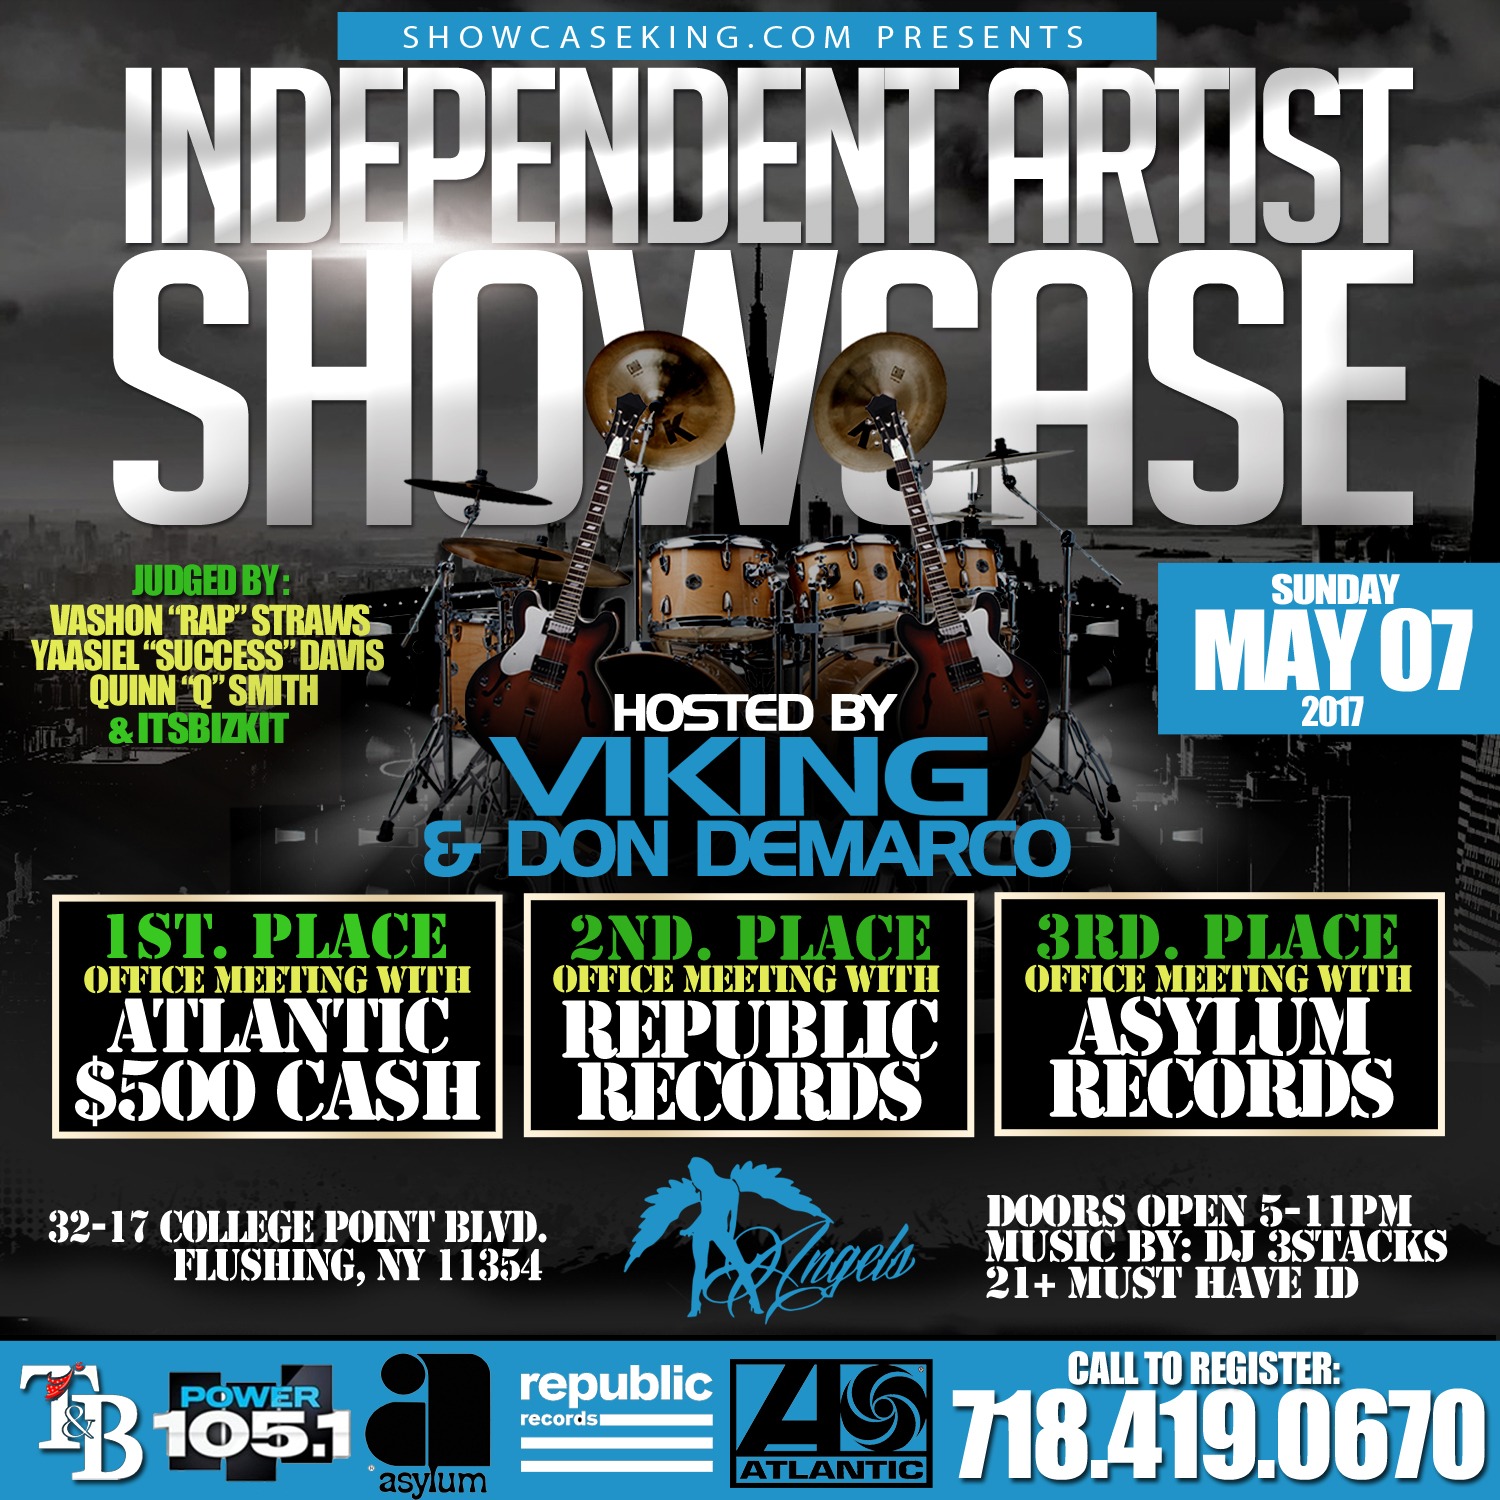 showcase king inc in association with tb management presents the independent artist showcase going down may 07 2017 at angles 32 17 college point blvd